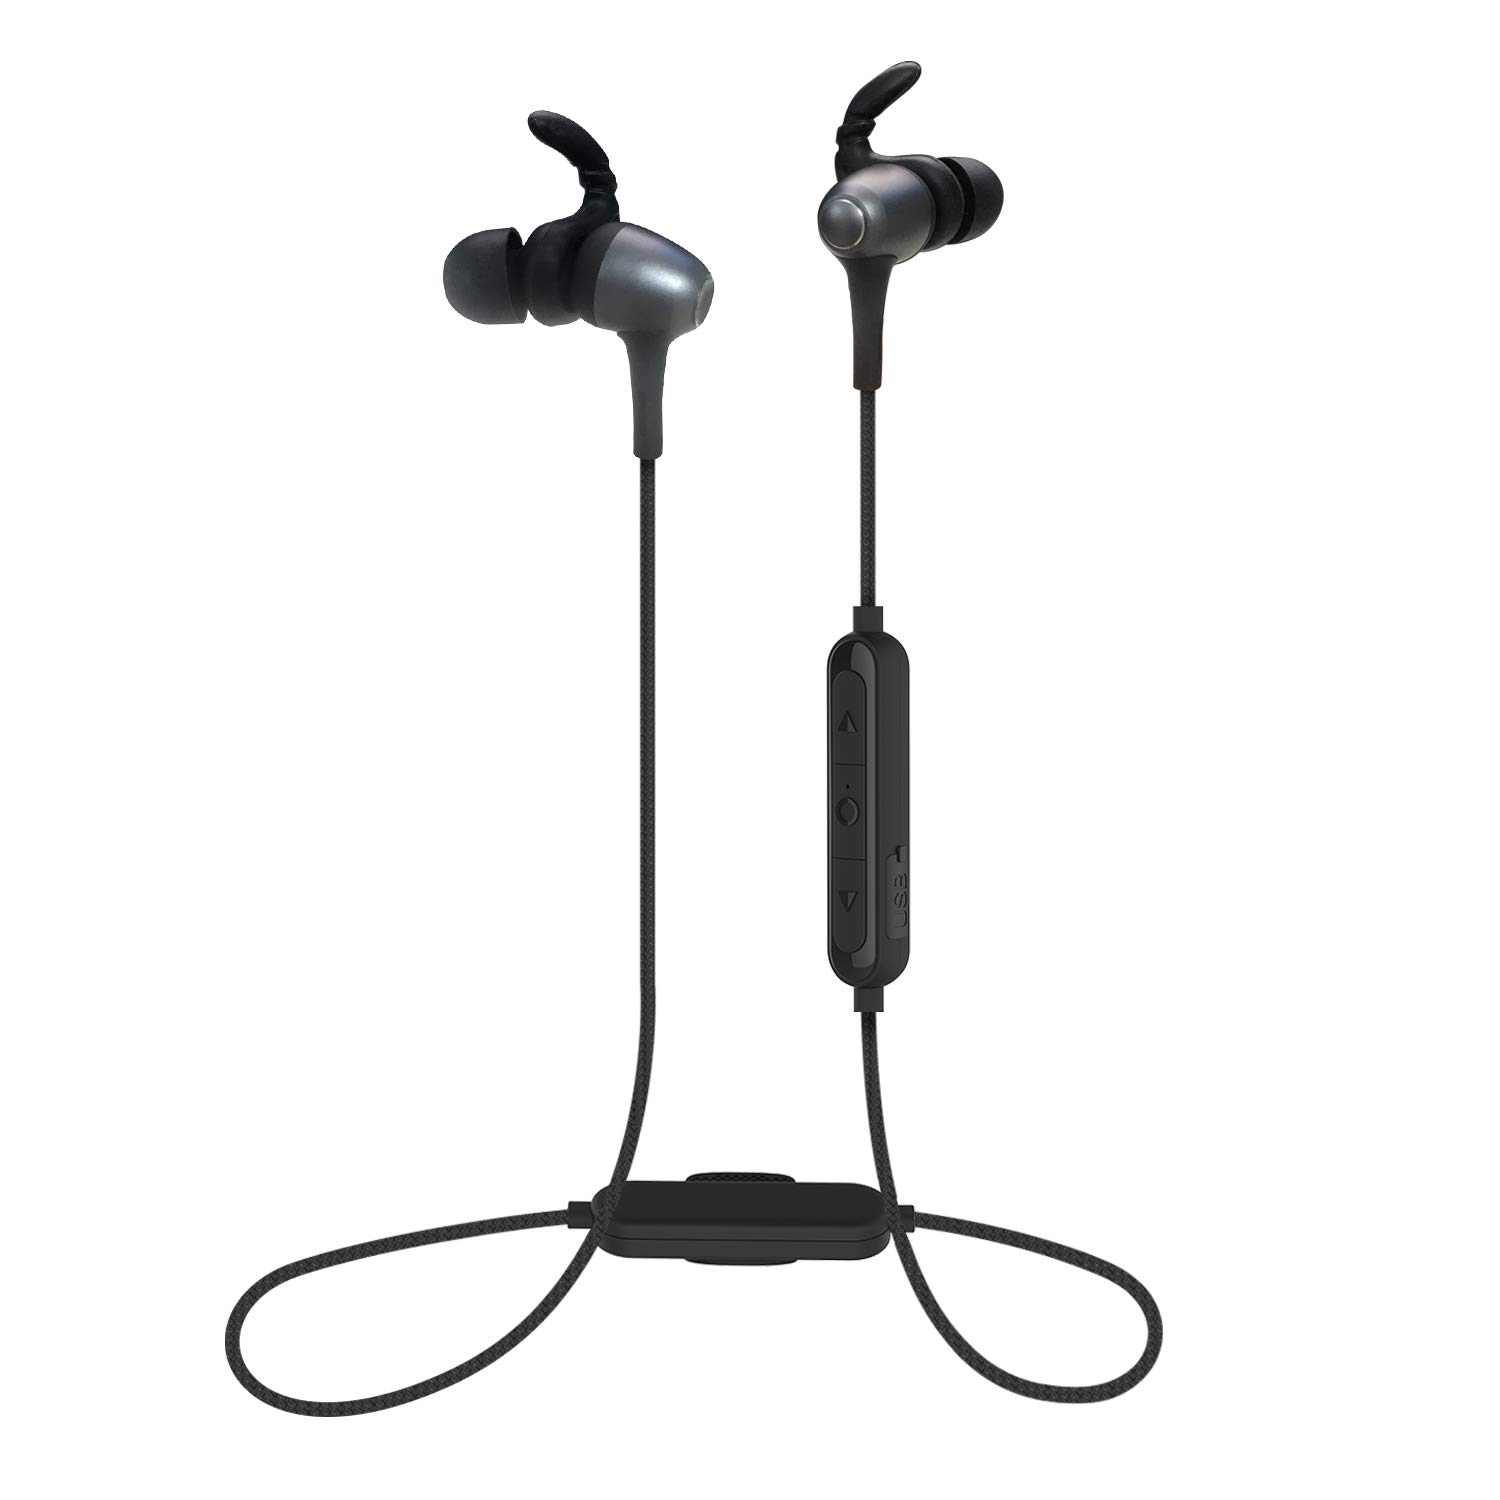 Bluetooth Headphones with Cloth Clip, Wireless Stereo Noise Cancelling in-Ear Earbuds and Sweat-Proof Built-in Mic Bluetooth Magnetic Headset 7 Hours Playtime Secure Music Earphones